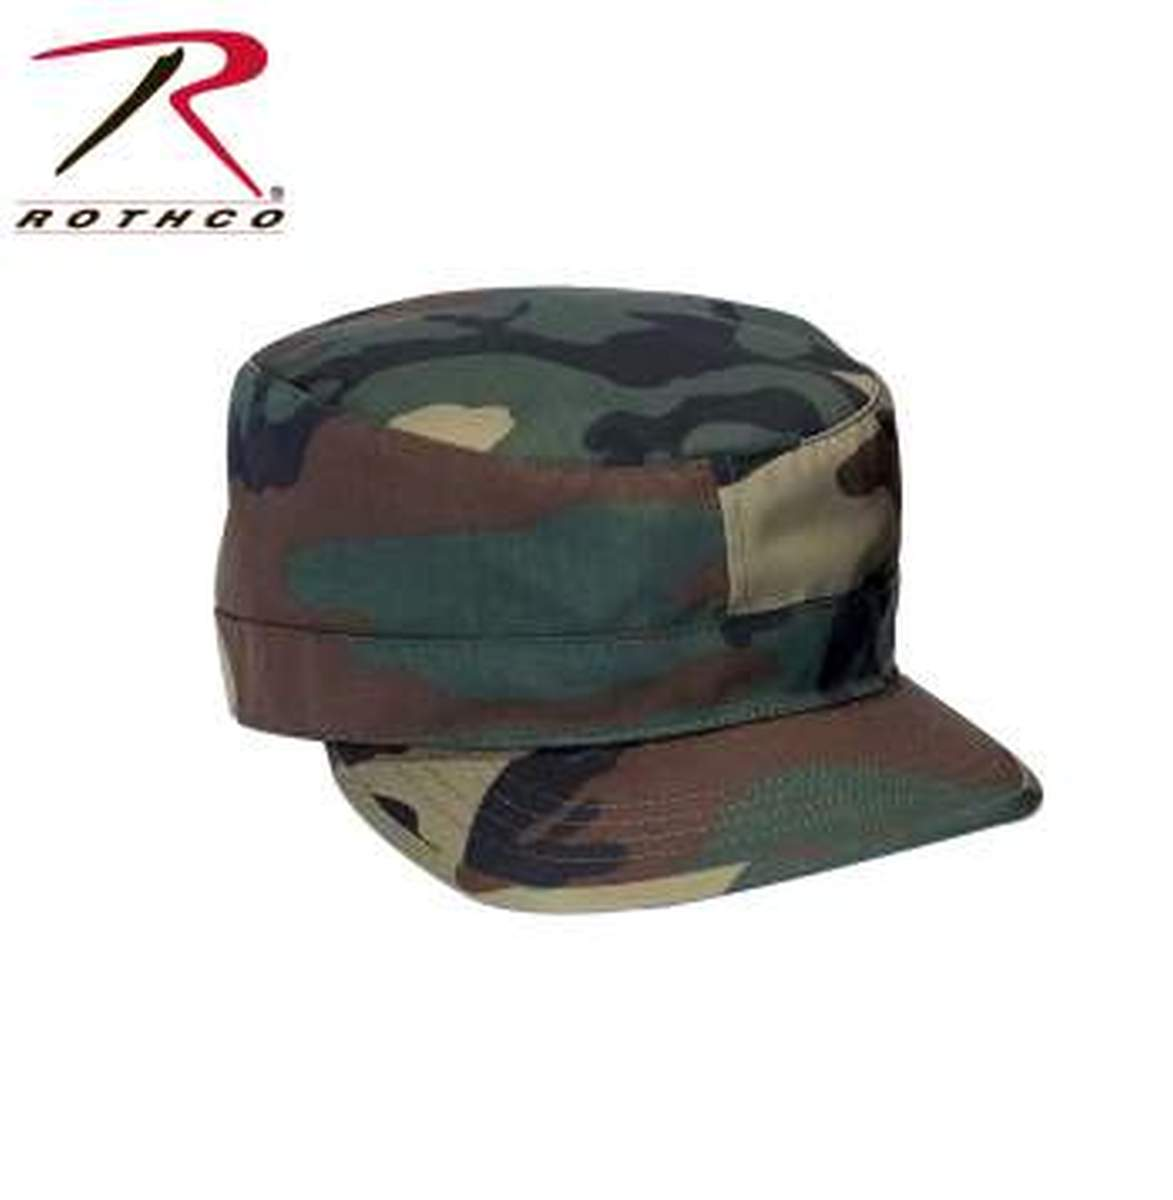 d87ae2adef3 Buy Rothco Adjustable Camo Fatigue Cap - Rothco Online at Best price ...